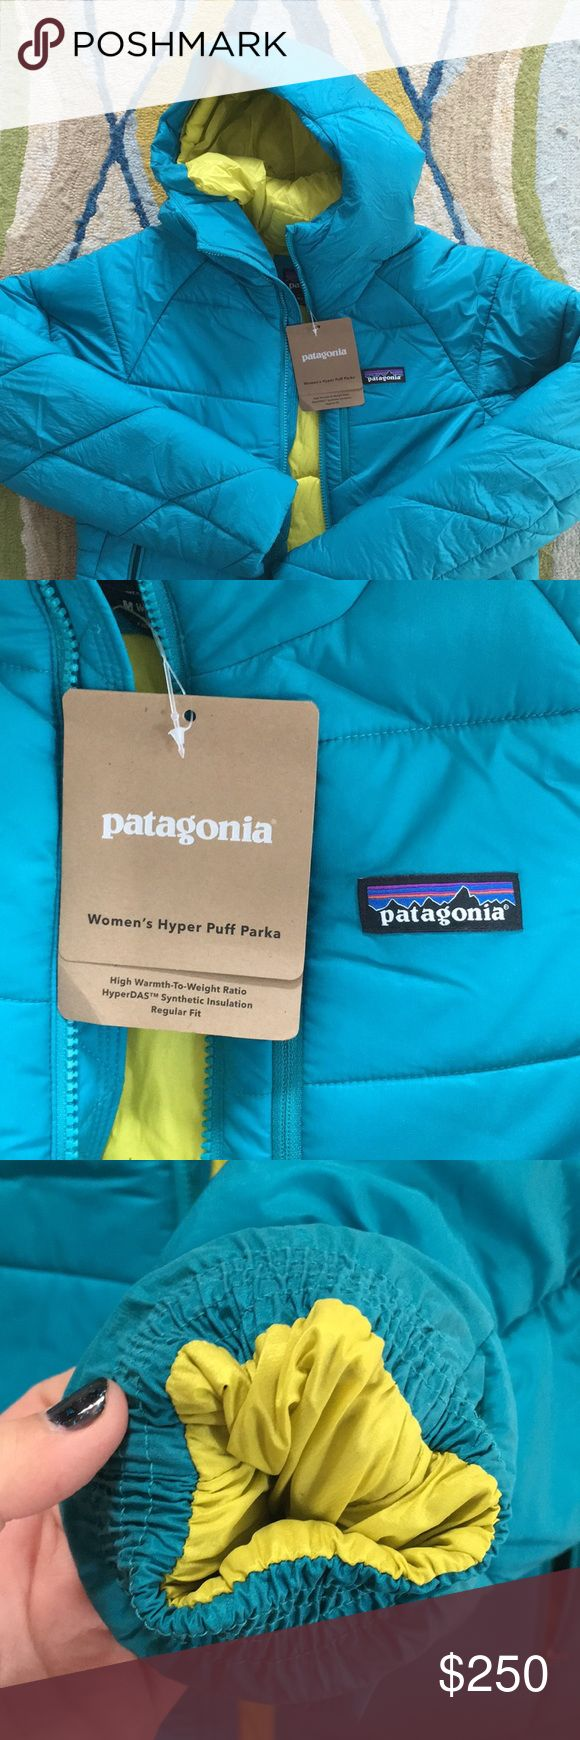 Patagonia Parka/Jacket (SALE!!) The Hyper Puff Parka is one of Patagonias warmest synthetic jackets. Originally $349, I bought it for $244. Asking below purchasing price. This a beautiful jacket that unfortunately is too similar to the color of my ski pants. There are some super awesome details on t he sleeves and inside around the waist, and t comes with a stuff sack for easy storage/transport. This is a super steal!! Patagonia Jackets & Coats Puffers